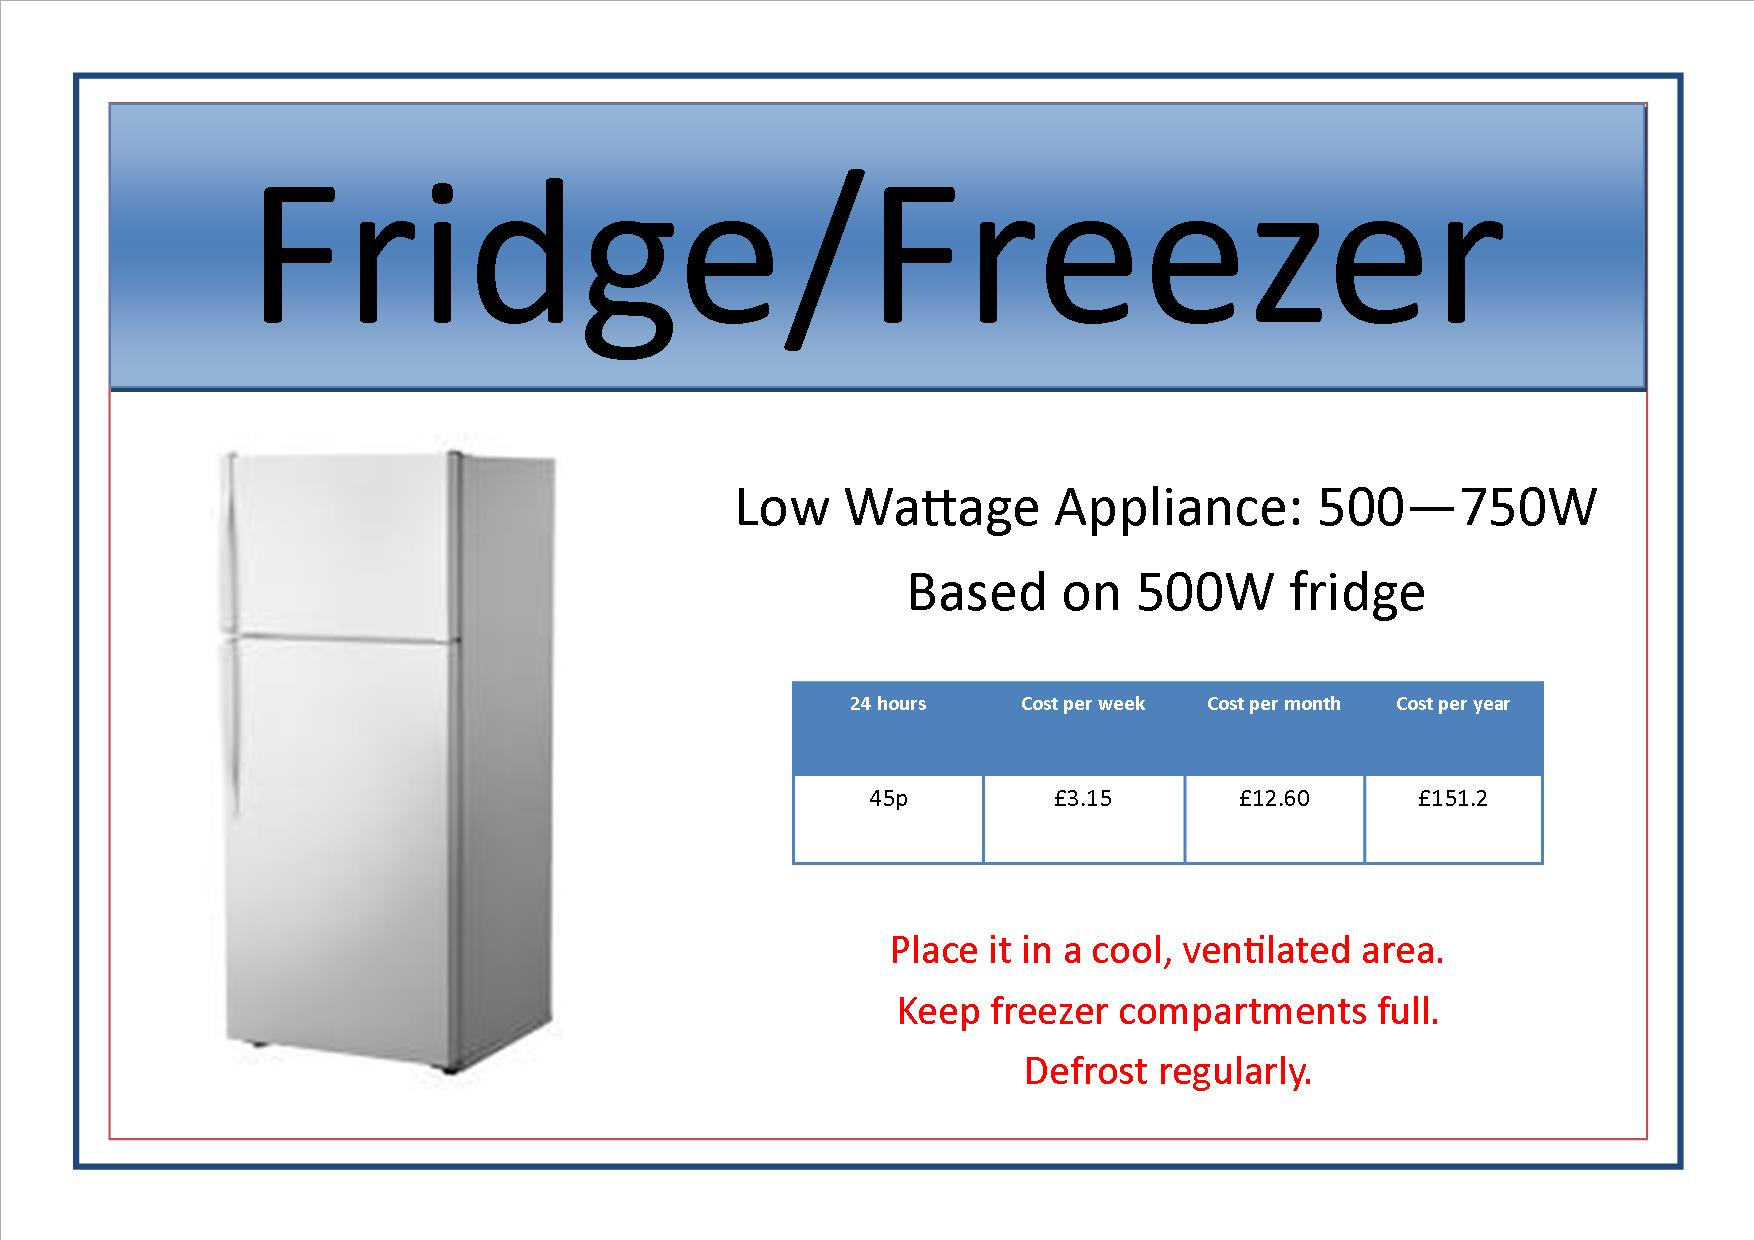 Appliance signs edit4 - fridge-freezer